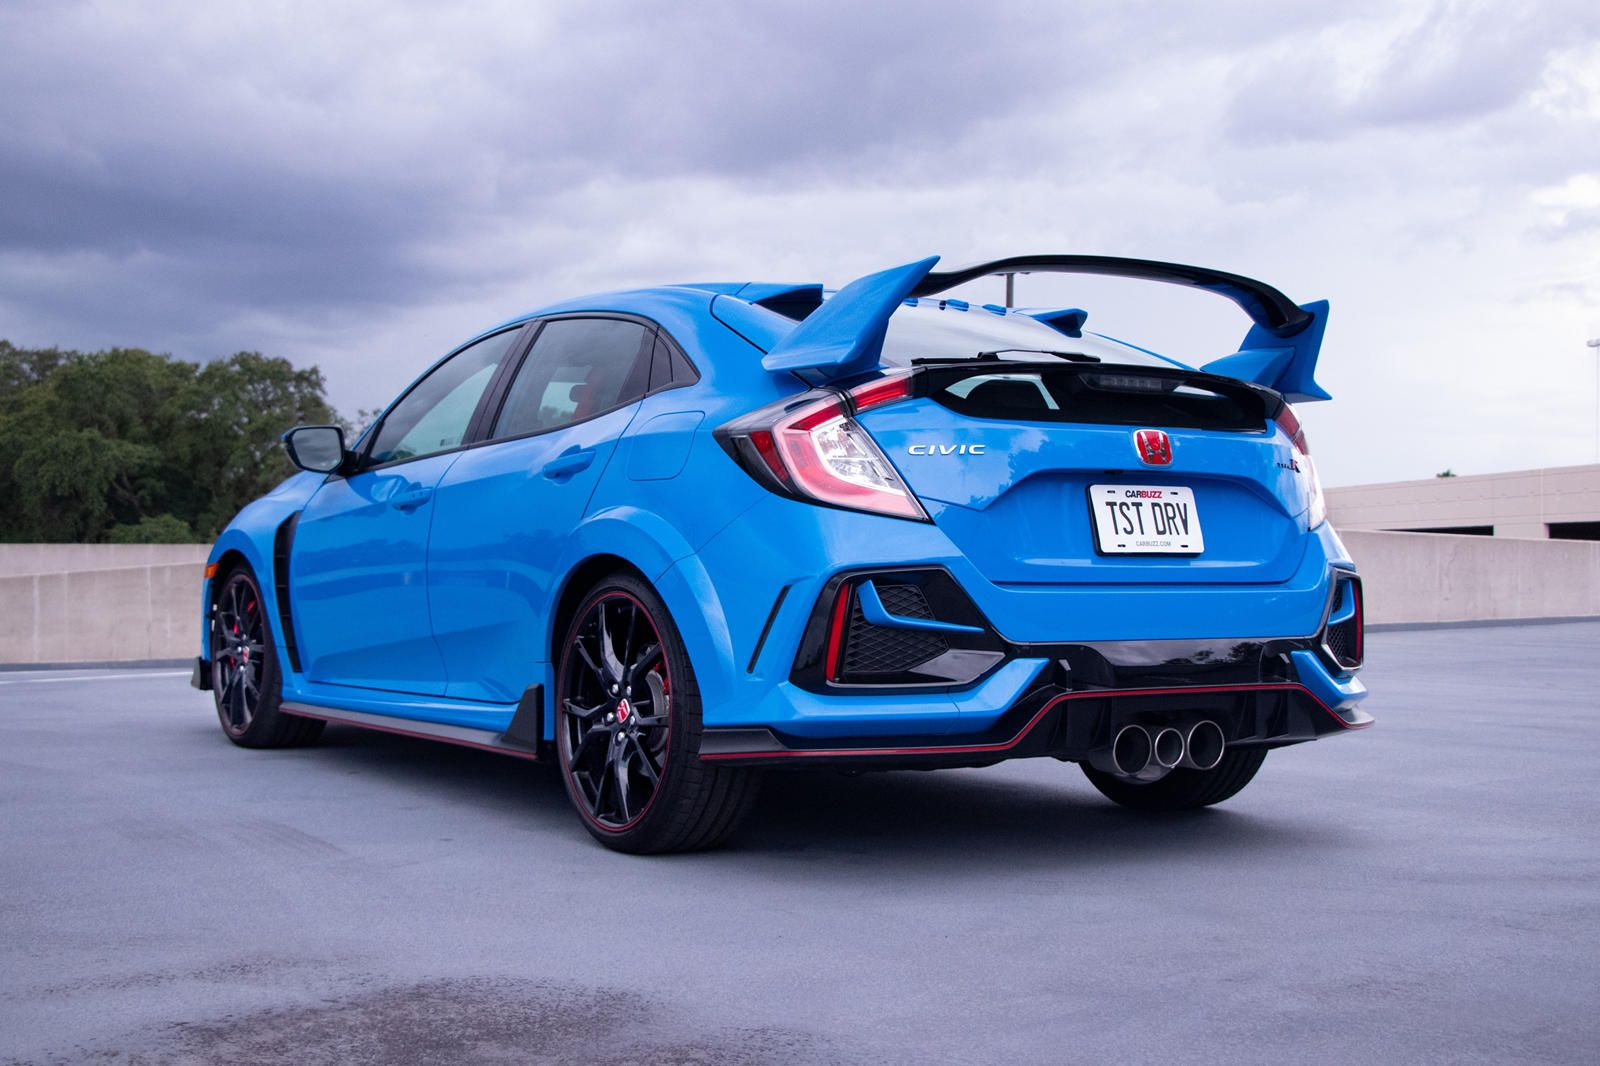 Why The 2020 Honda Civic Type R Is The Ultimate Hot Hatchback It Does Everything Well But Has One Major Flaw In 2020 Honda Civic Type R Honda Civic Hot Hatchback